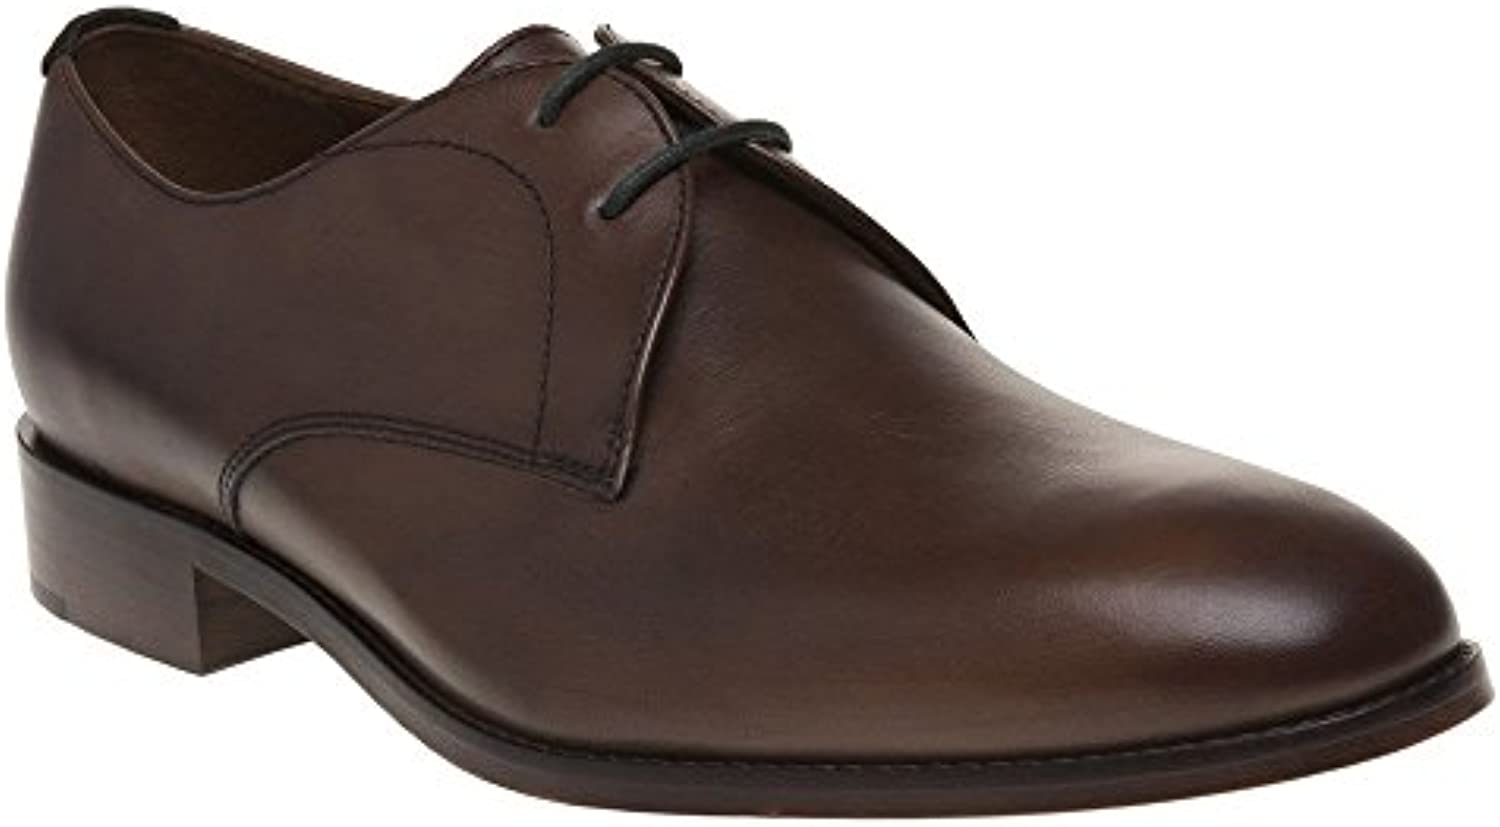 Sole Beatty Herren Schuhe Braun